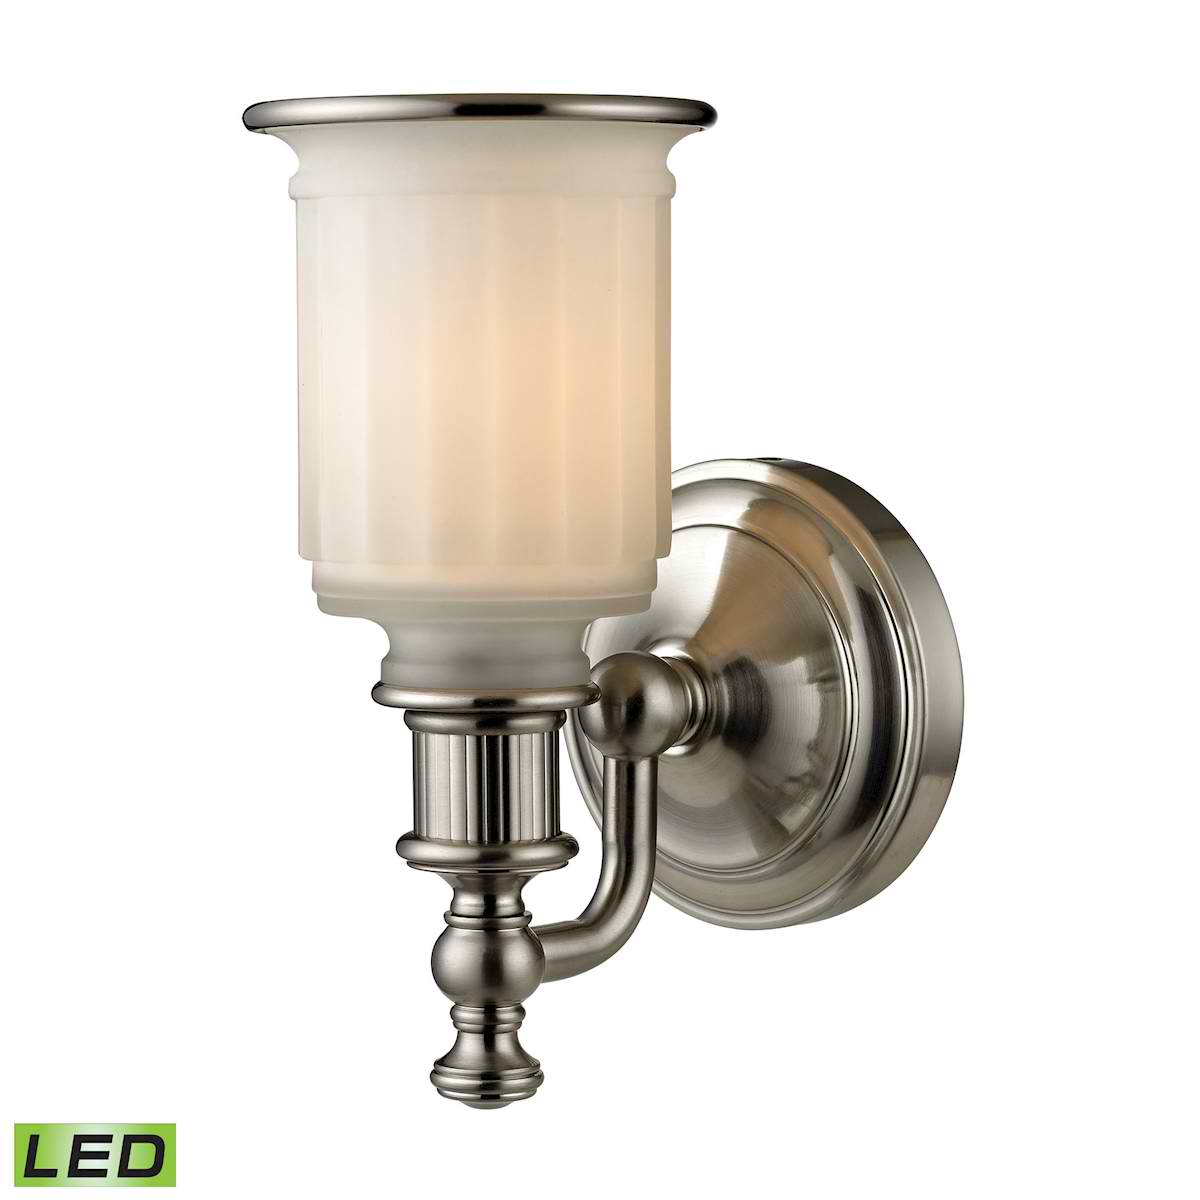 Acadia Collection 1 Light Bath in Brushed Nickel - LED Offering Up To 800 Lumens (60 Watt Equivalent)